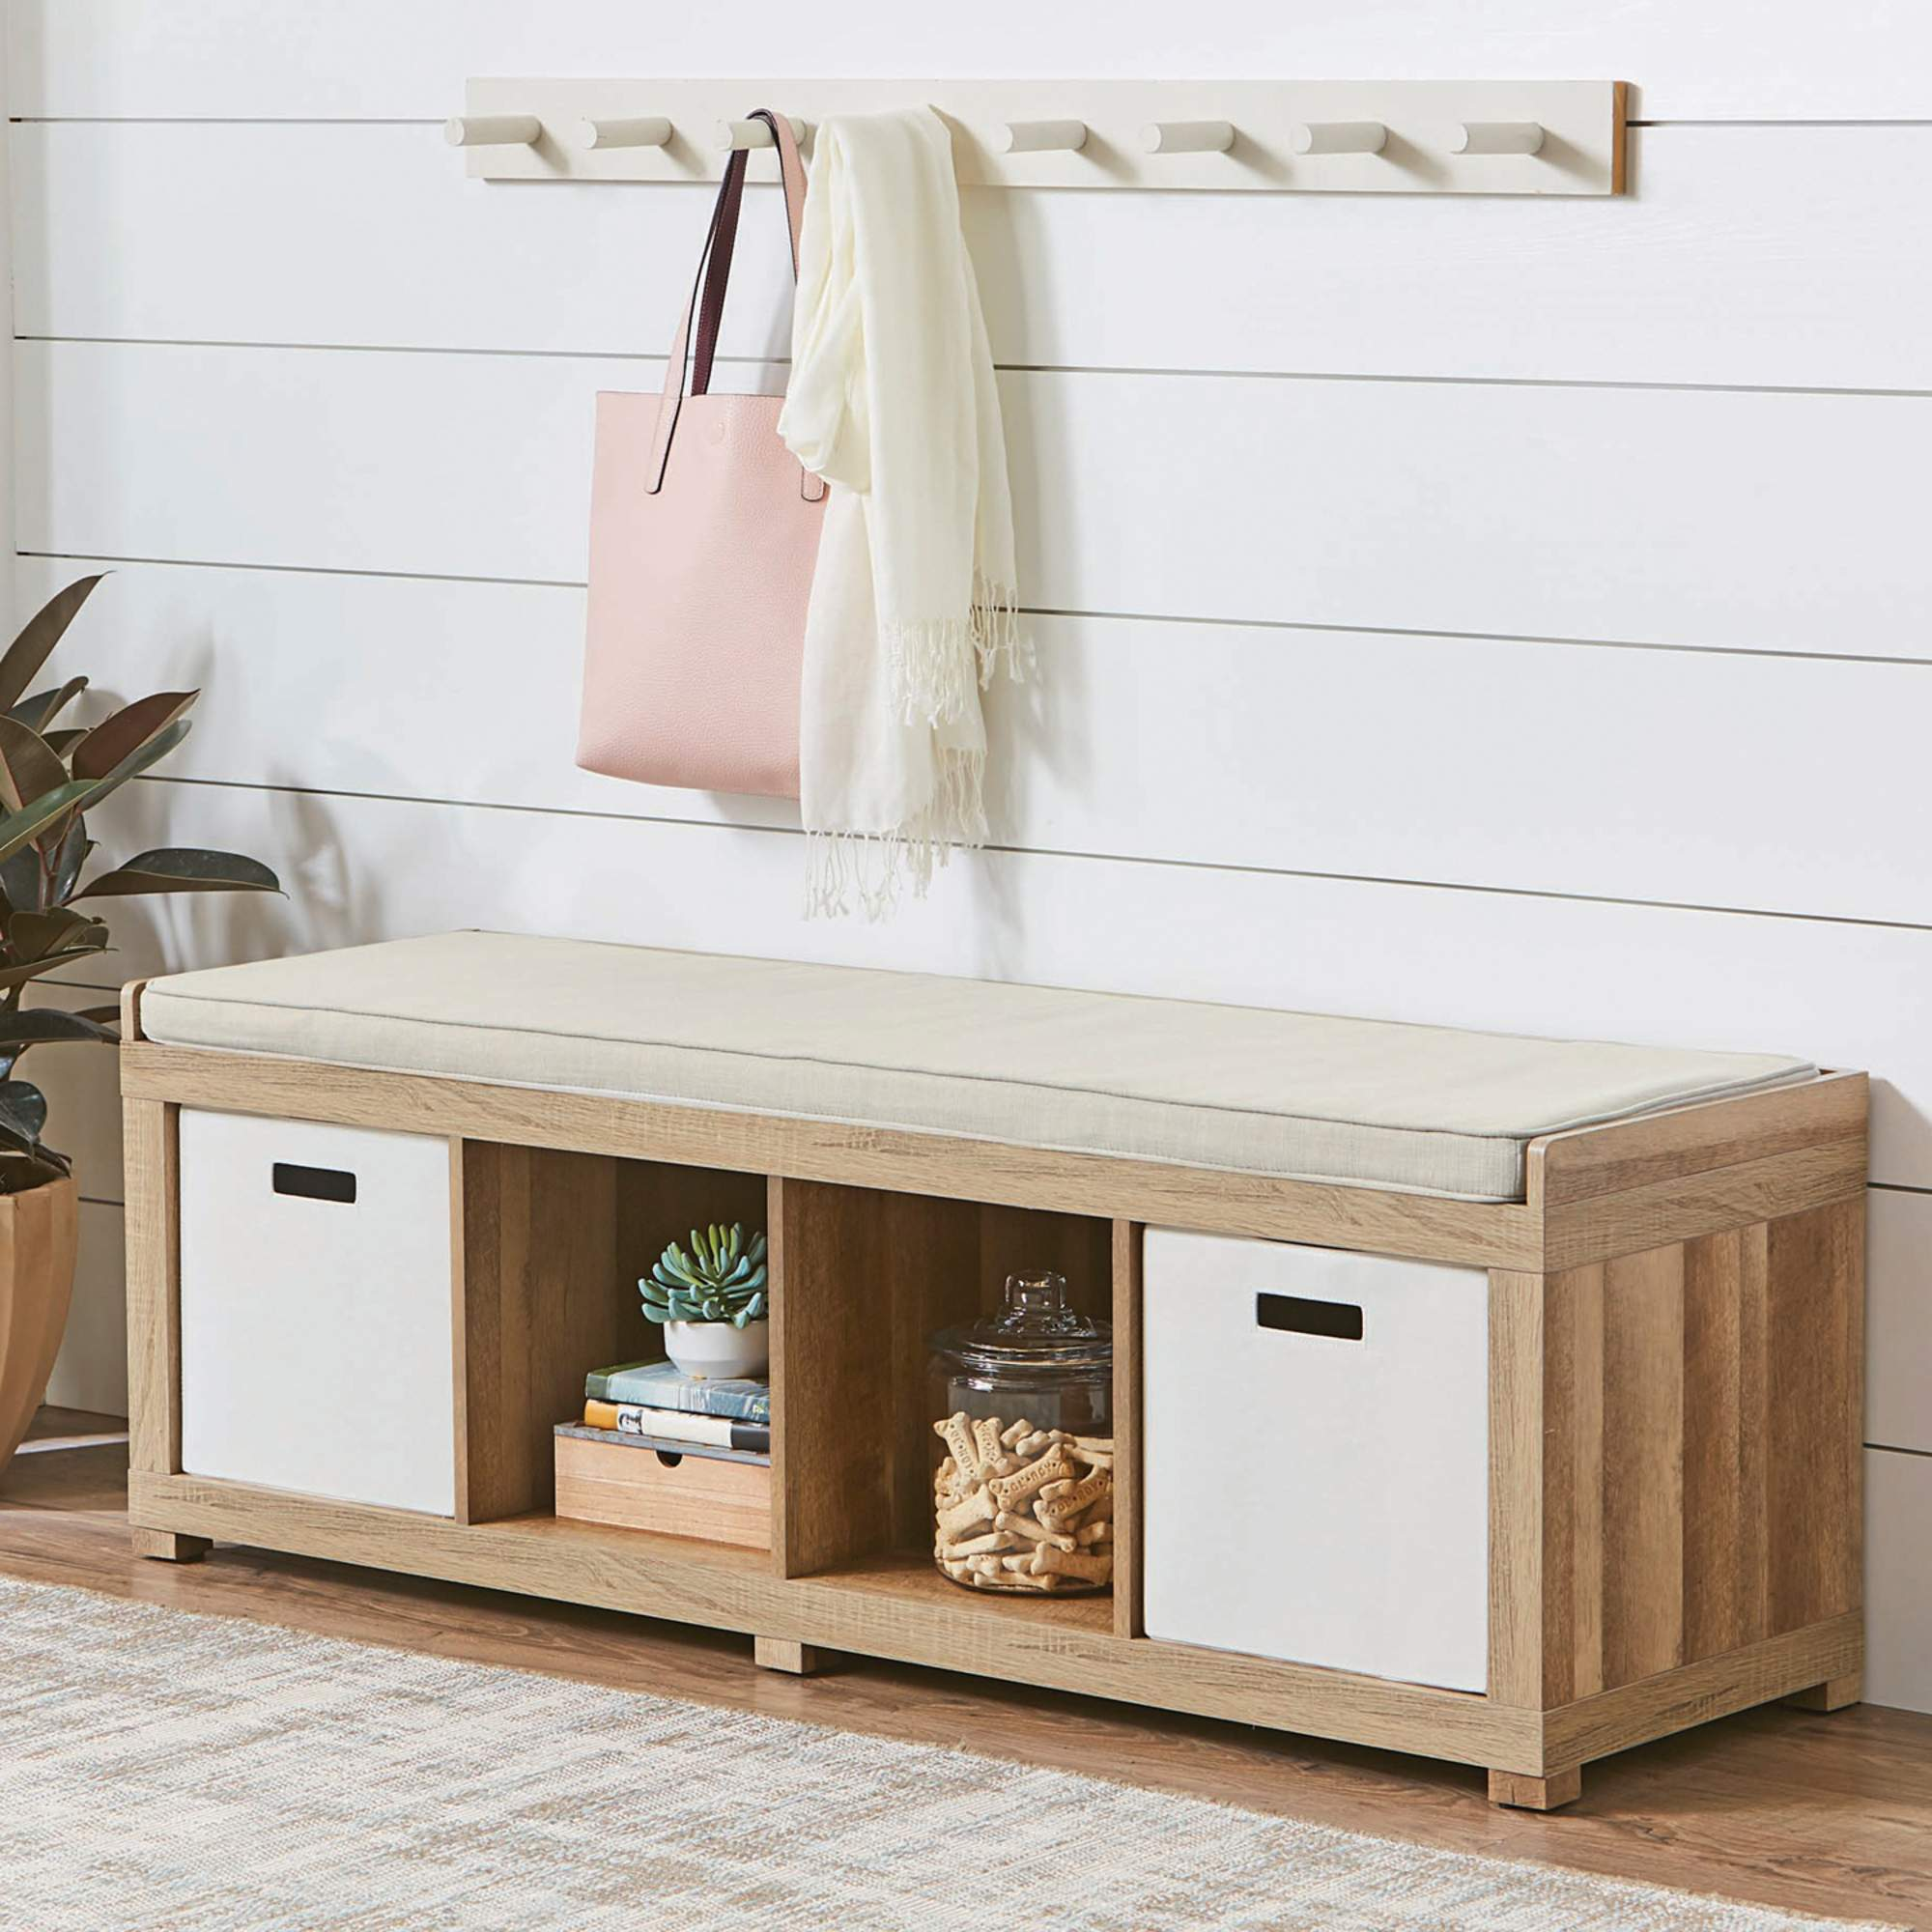 Better Homes and Gardens 4-Cube Organizer Bench, Weathered